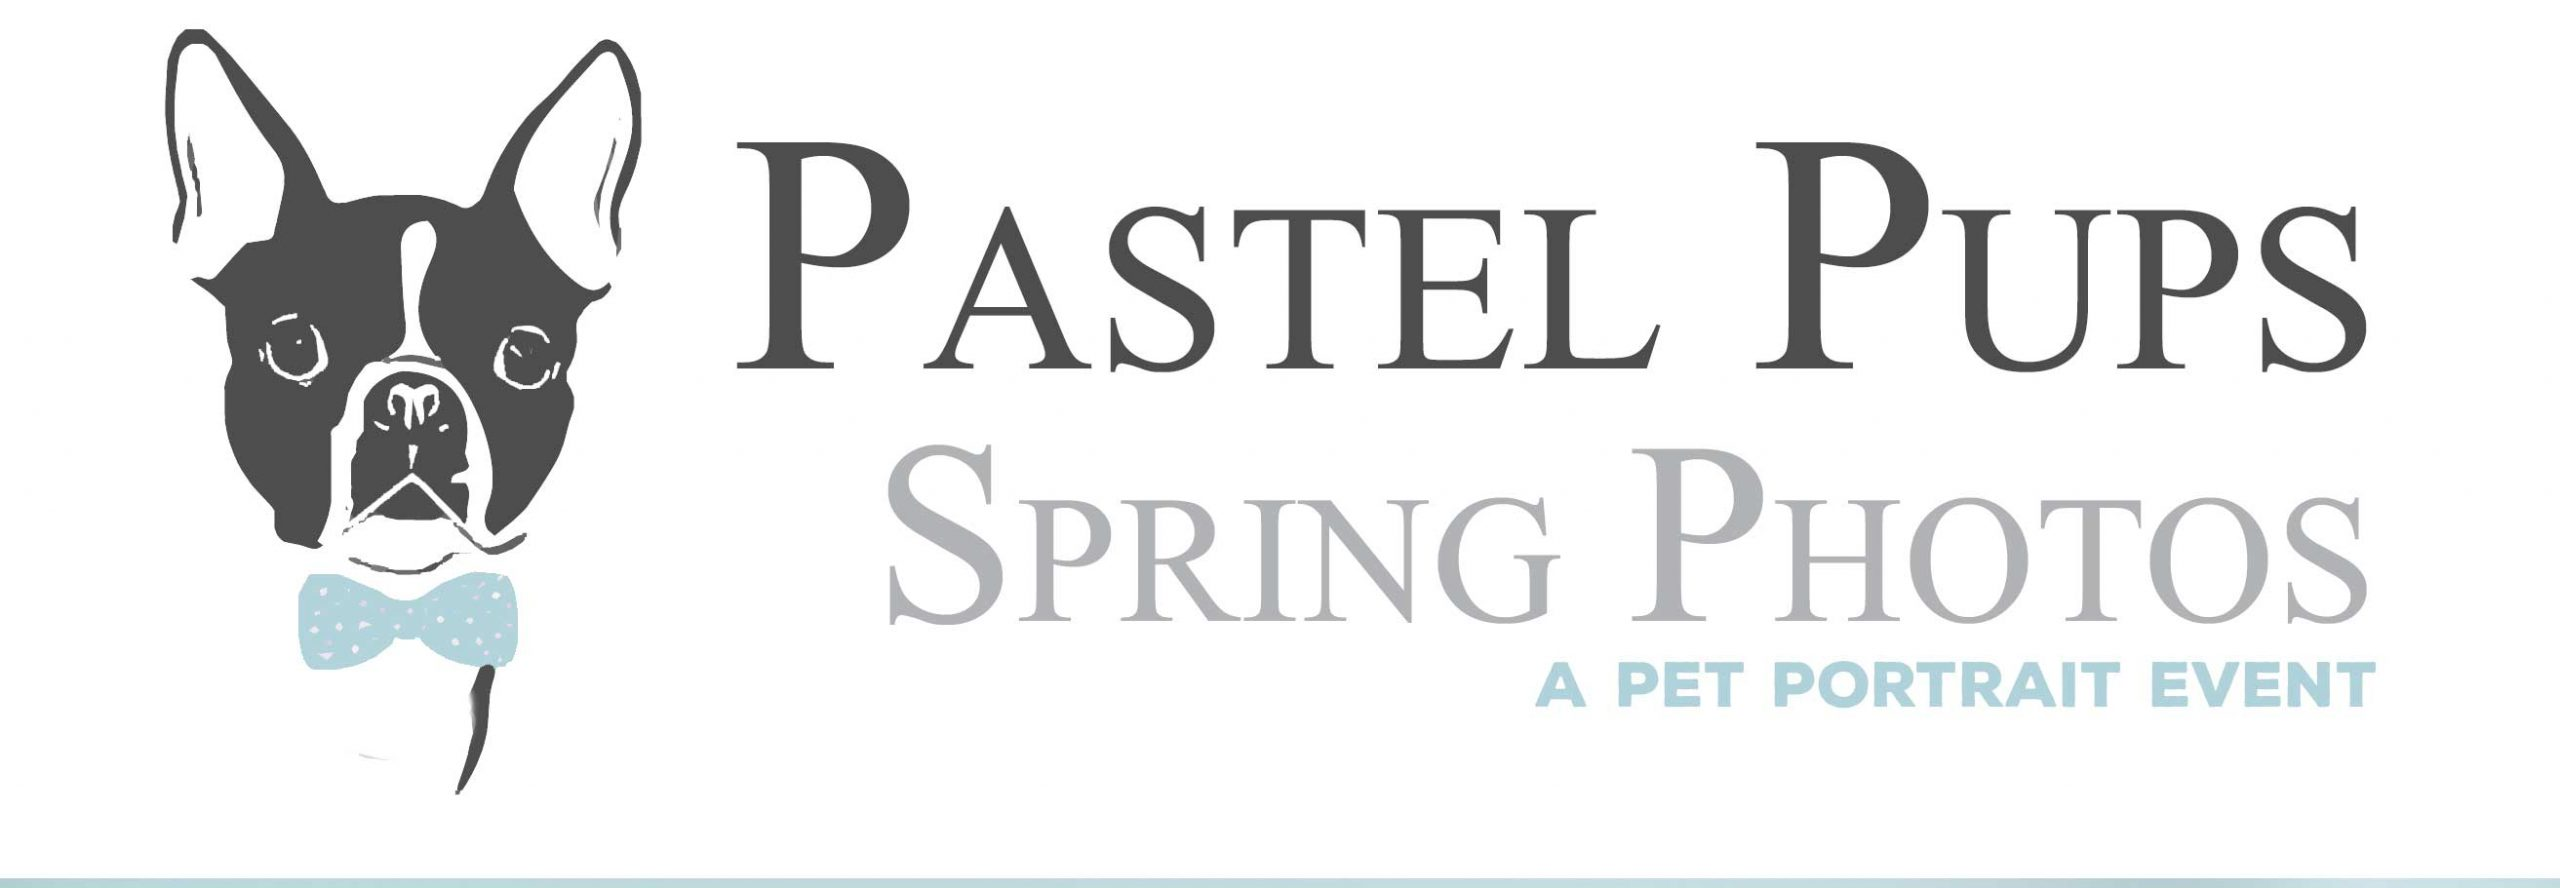 Athens dog photographer announces the next pet portrait event - pastel pups spring portraits for your dog.